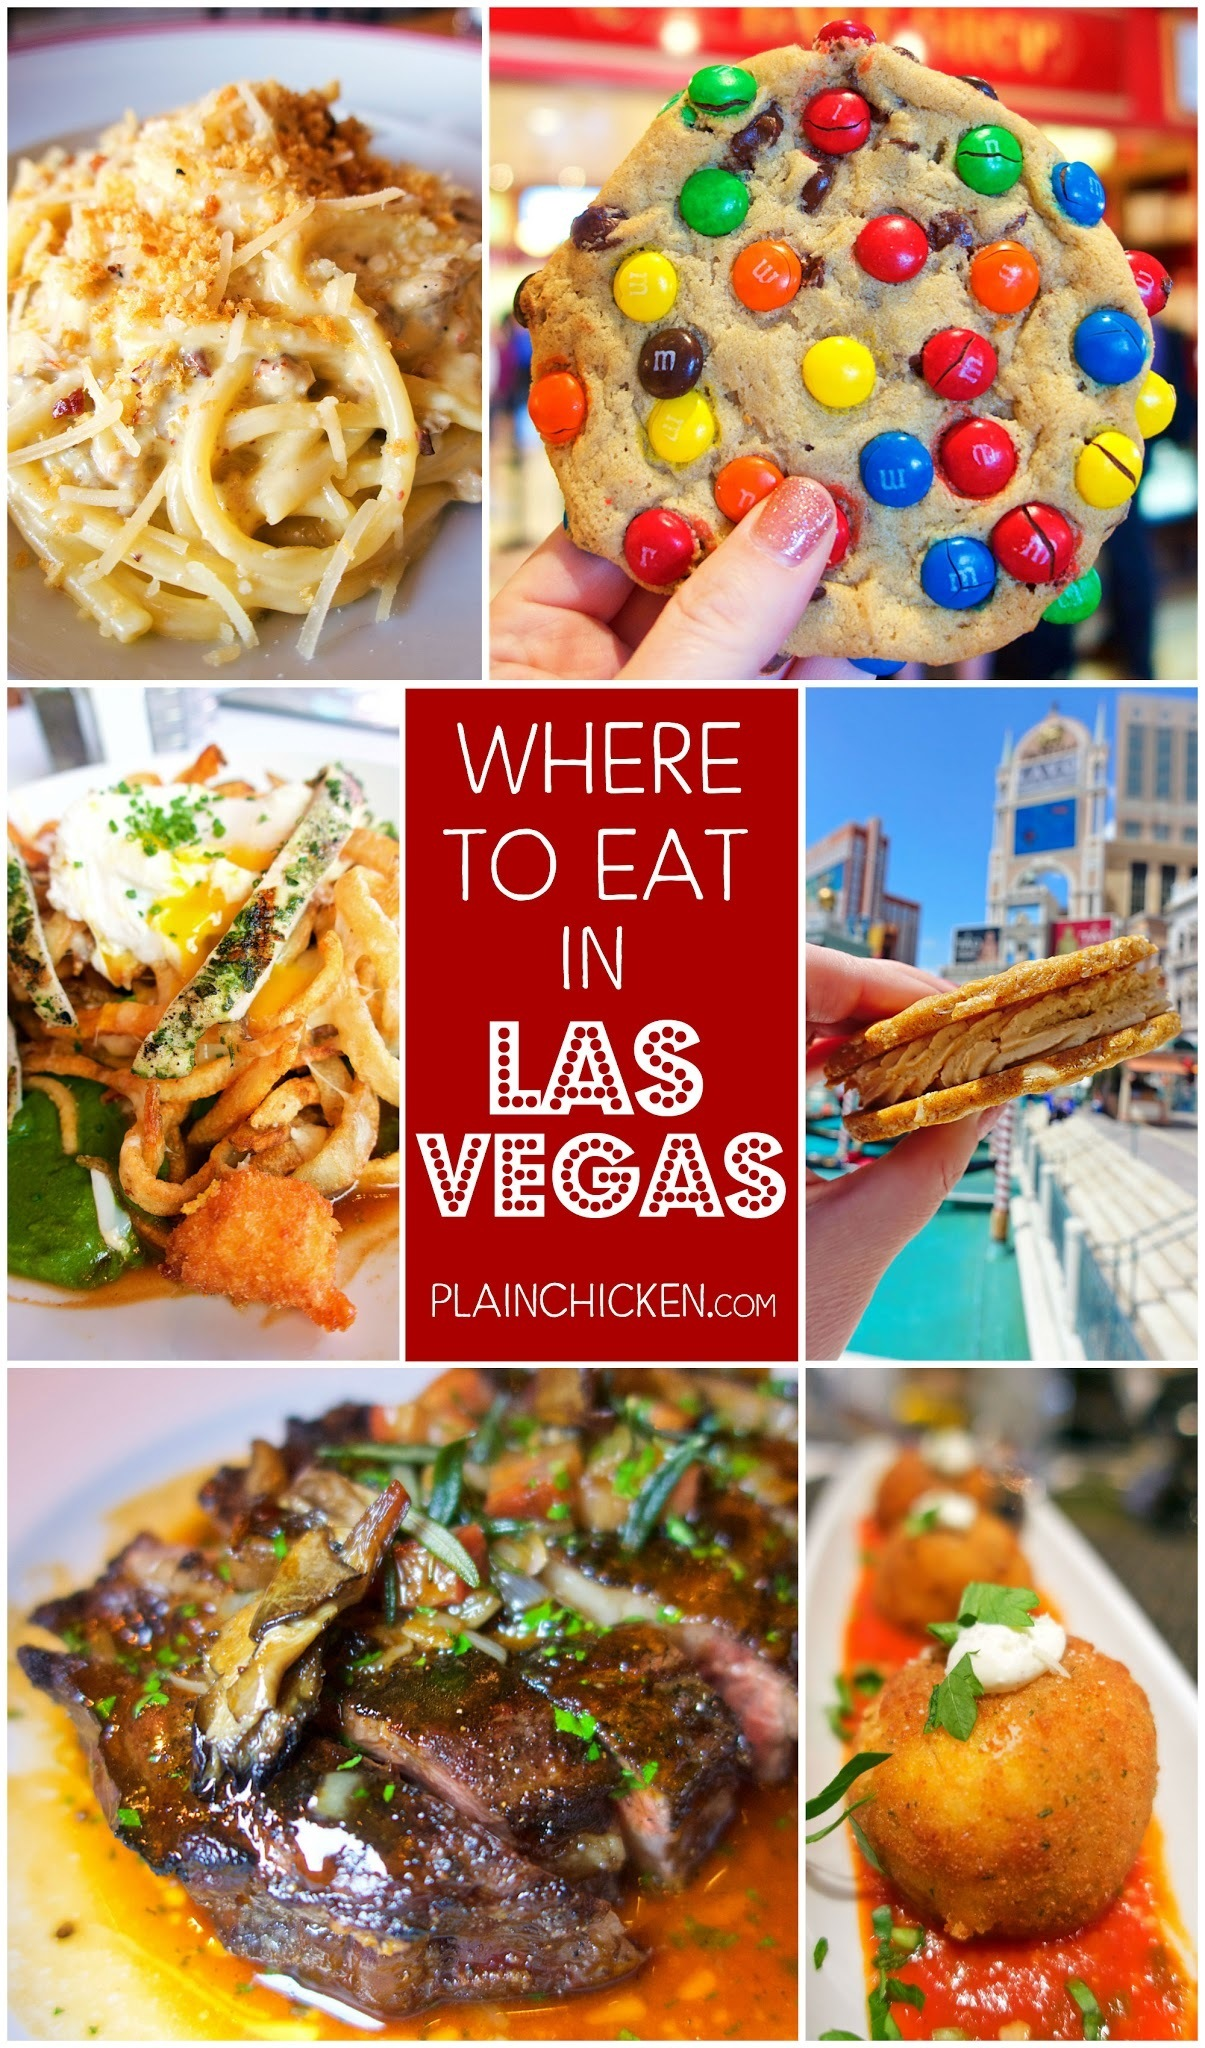 Where to Eat in Las Vegas